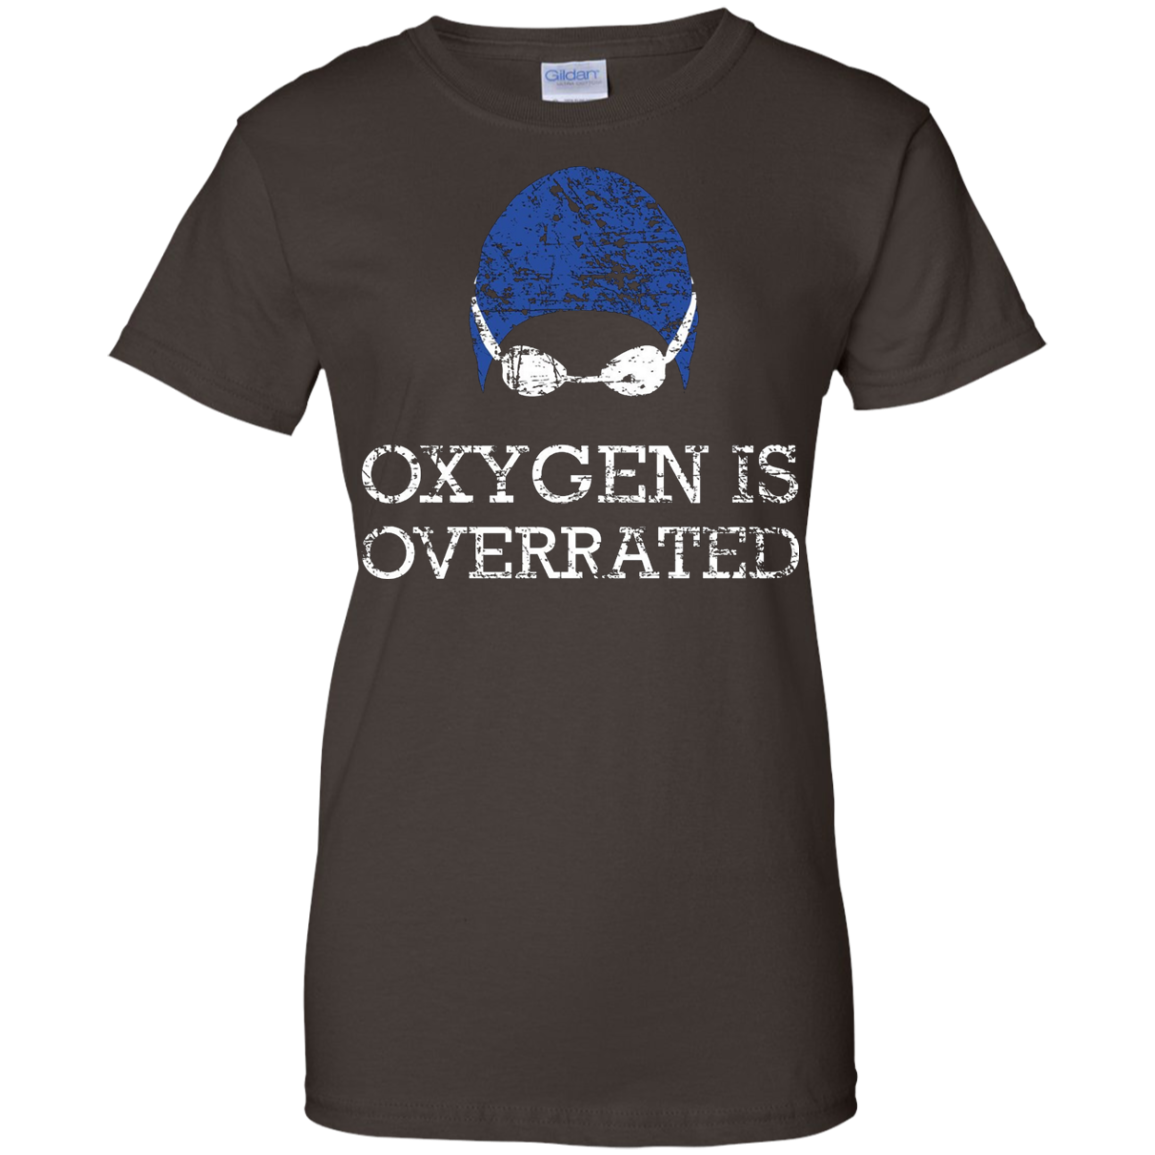 Oxygen is Overrated Shirt, Funny Swimming Swim Team Gift